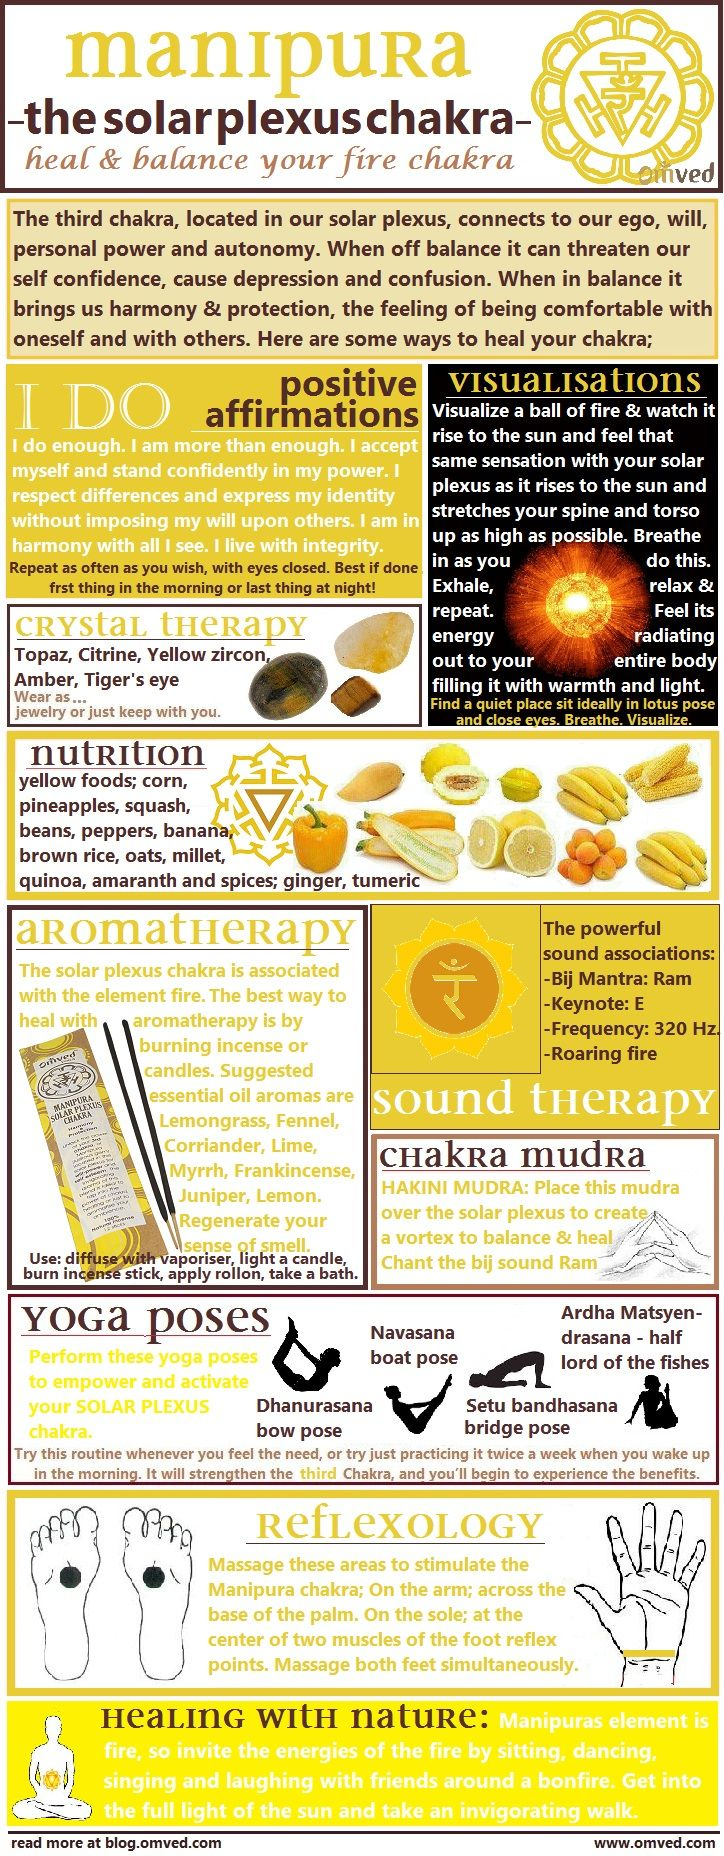 10 ways to Heal & Balance your chakras - There are many ways one can begin to balance their SOLAR PLEXUS CHAKRA. Here are several useful methods, including aromatherapy, visualisations, affirmations, mudra, yoga poses, nutrition, reflexology color, nature and sound therapy!